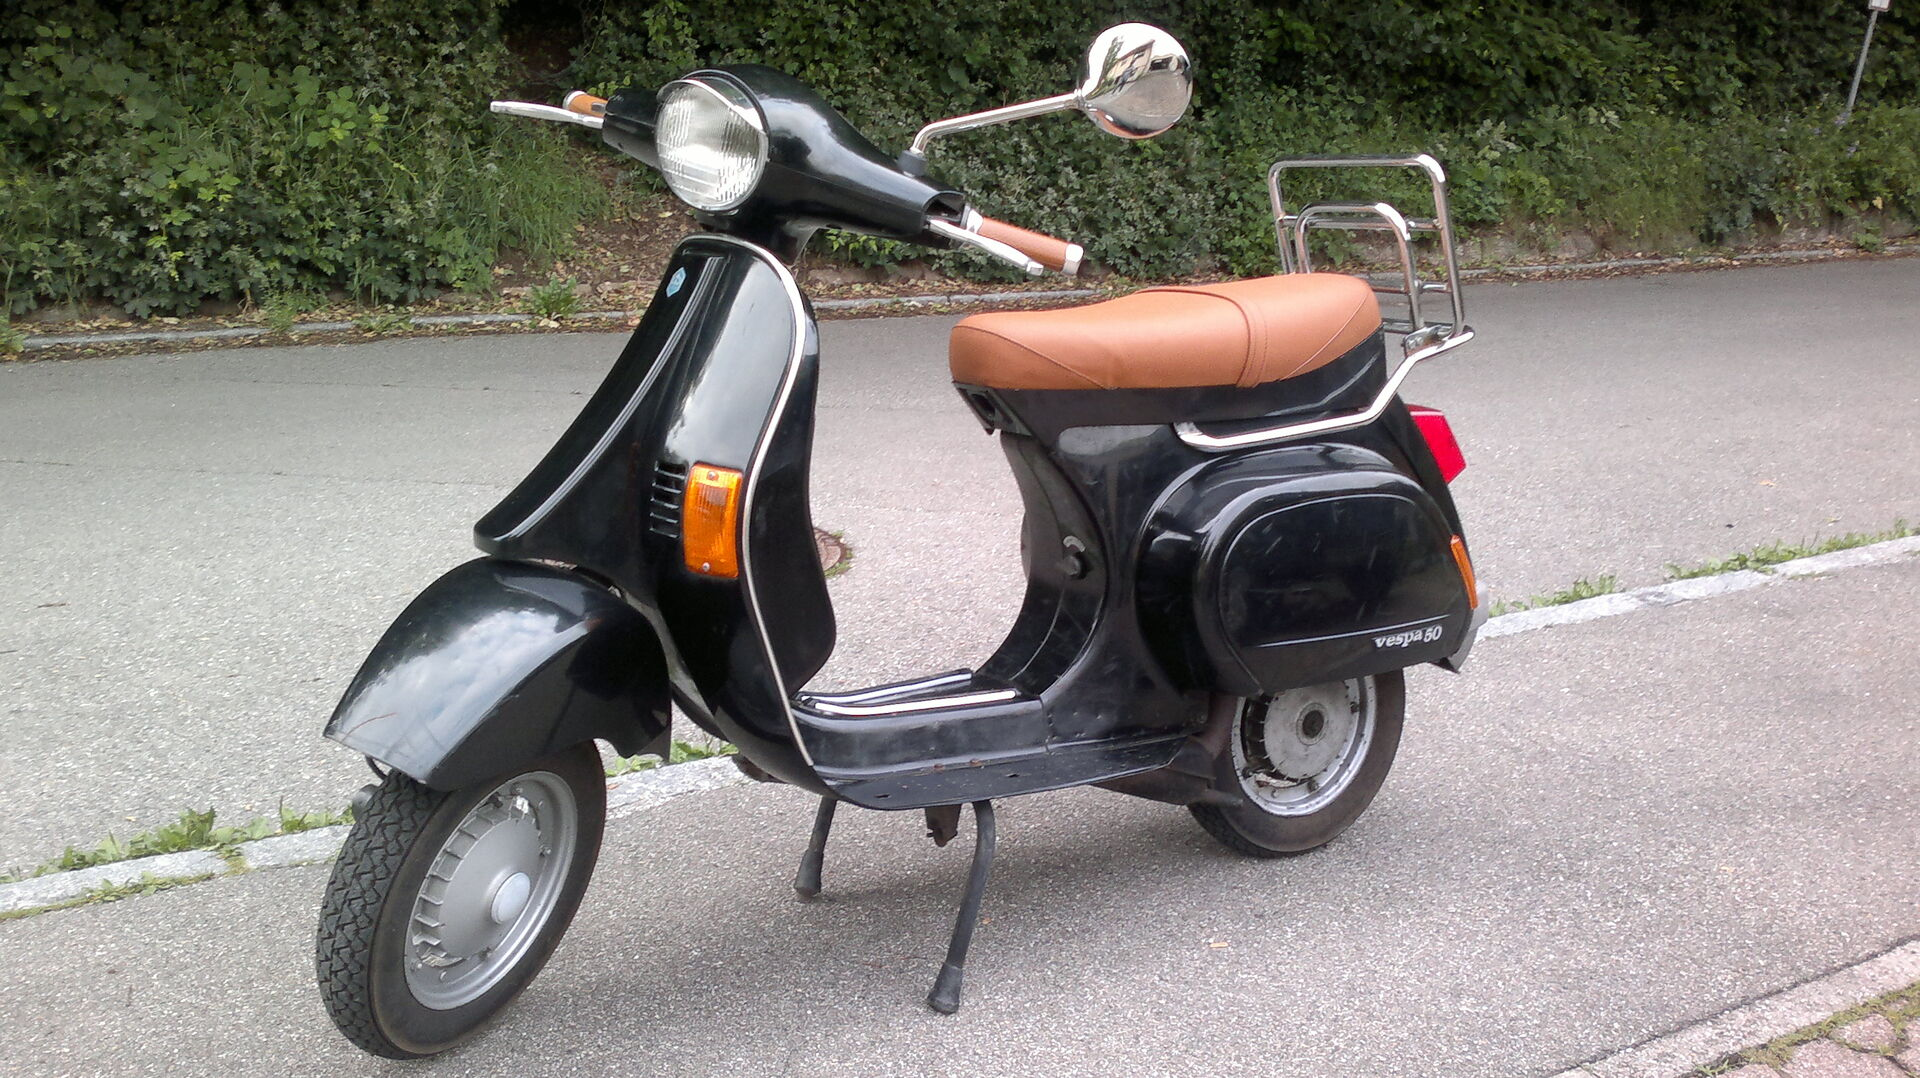 xl2 auf retro trimmen sonstiges das vespa forum f r. Black Bedroom Furniture Sets. Home Design Ideas